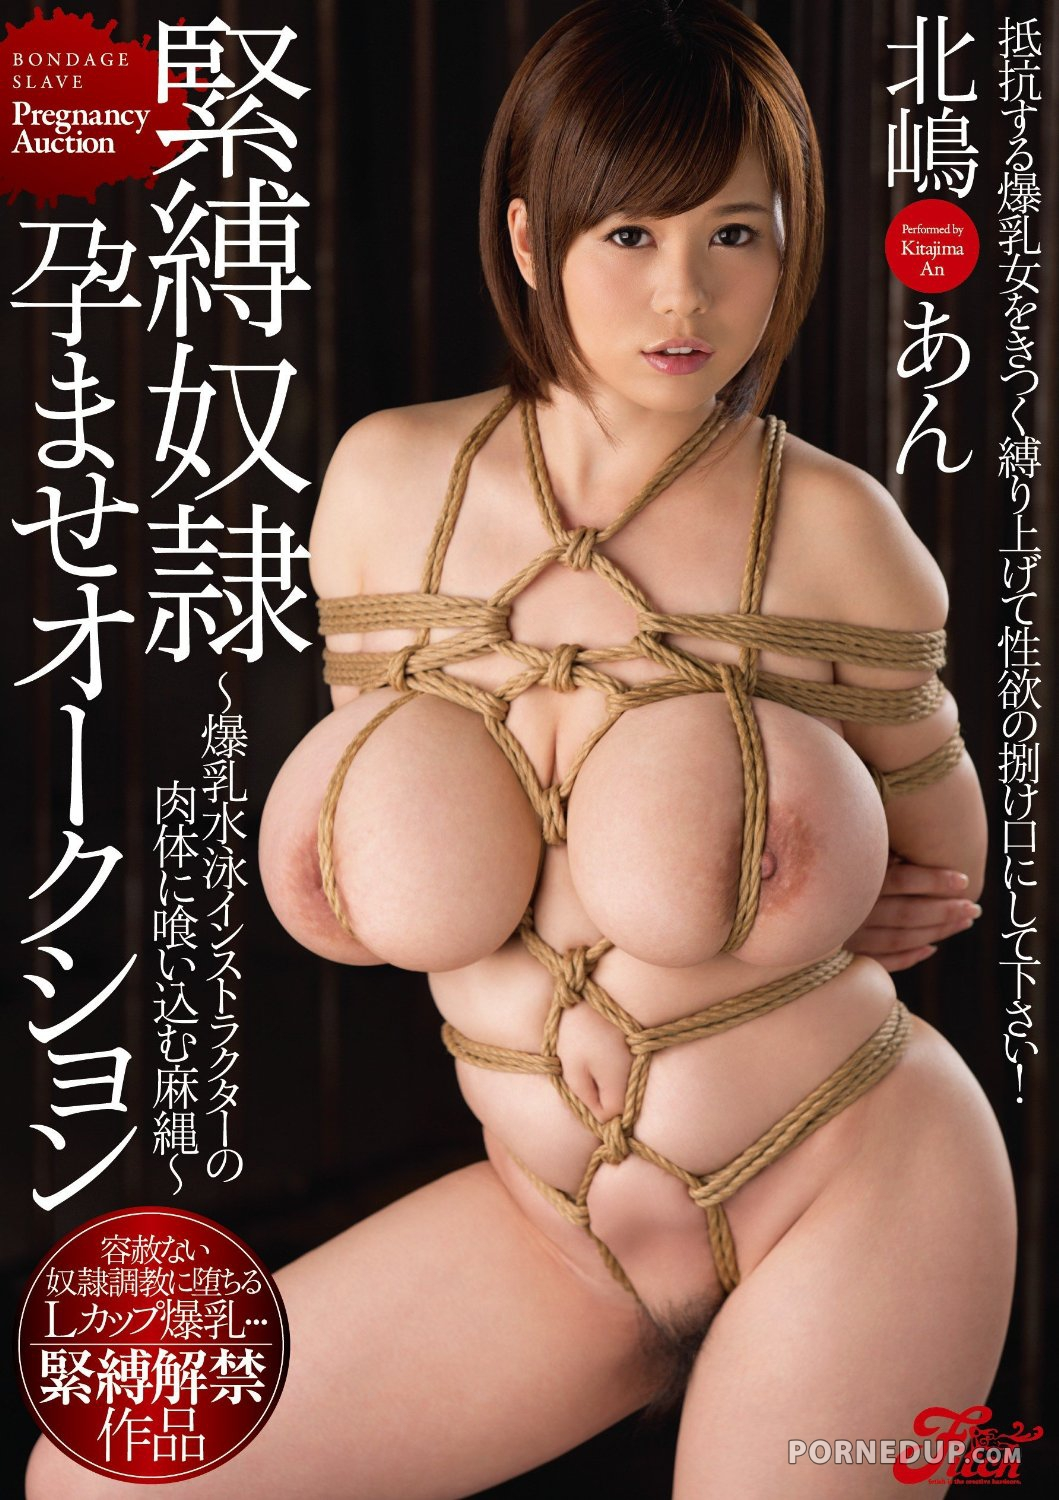 Tied Up Huge Boob Japanese Babe - Porned Up-1549